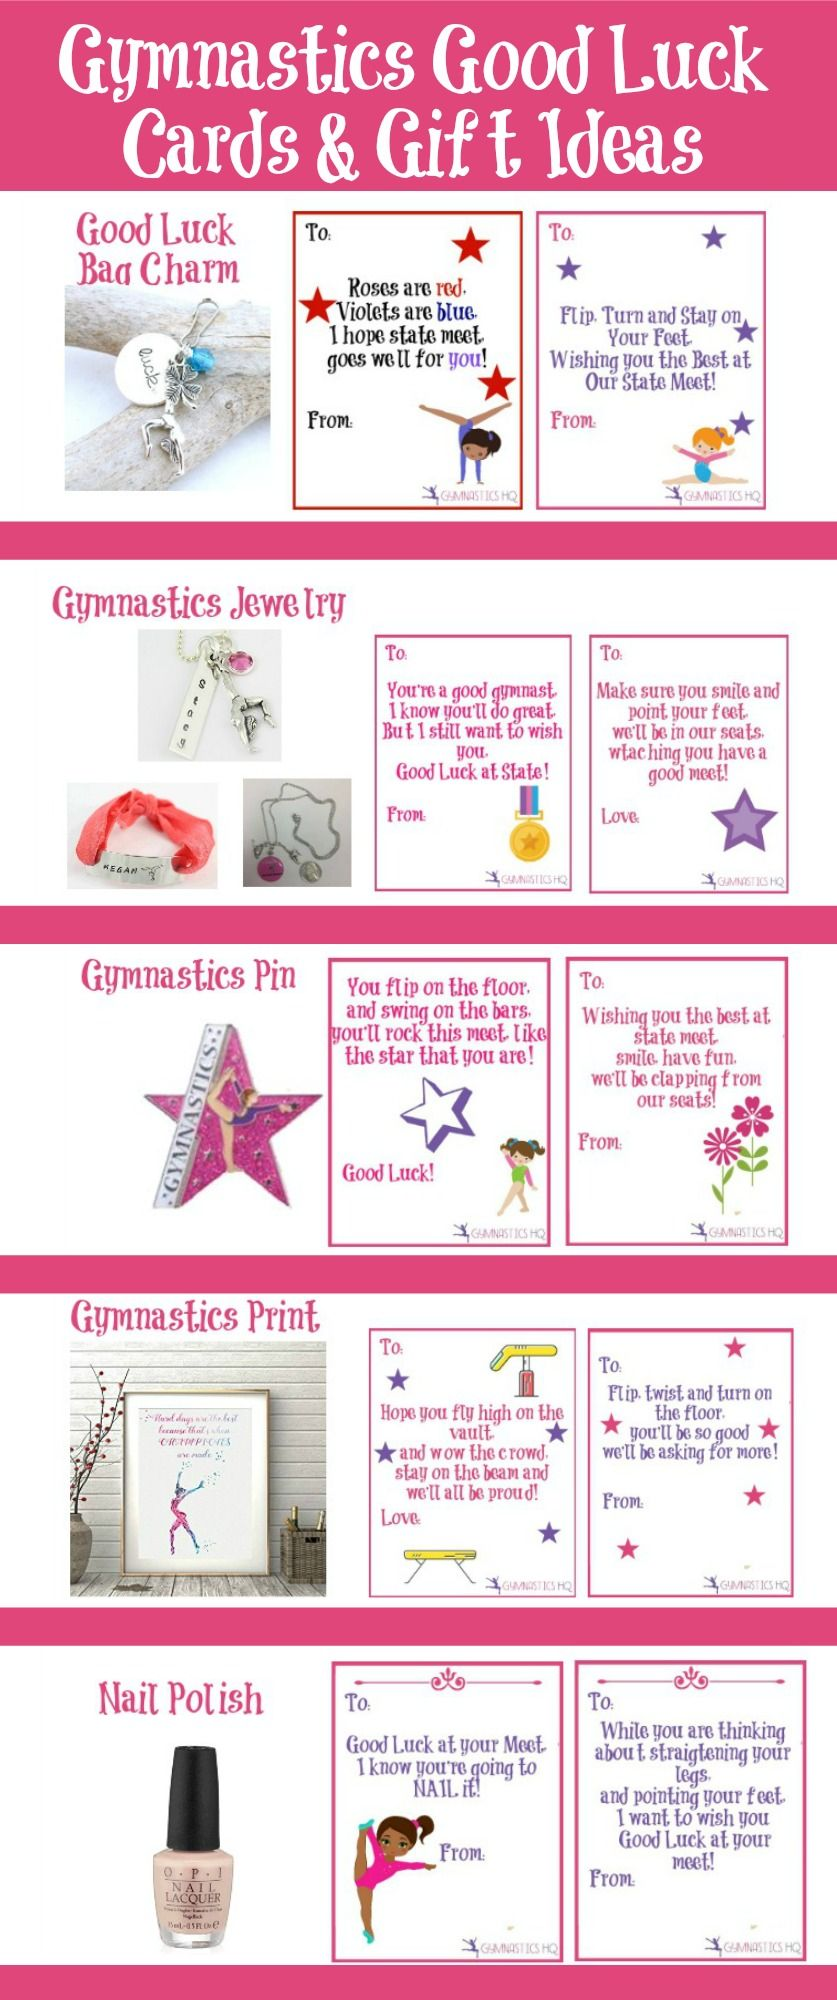 picture regarding Free Printable Good Luck Cards identified as Gymnastics Fantastic luck present recommendations alongside with cost-free printable